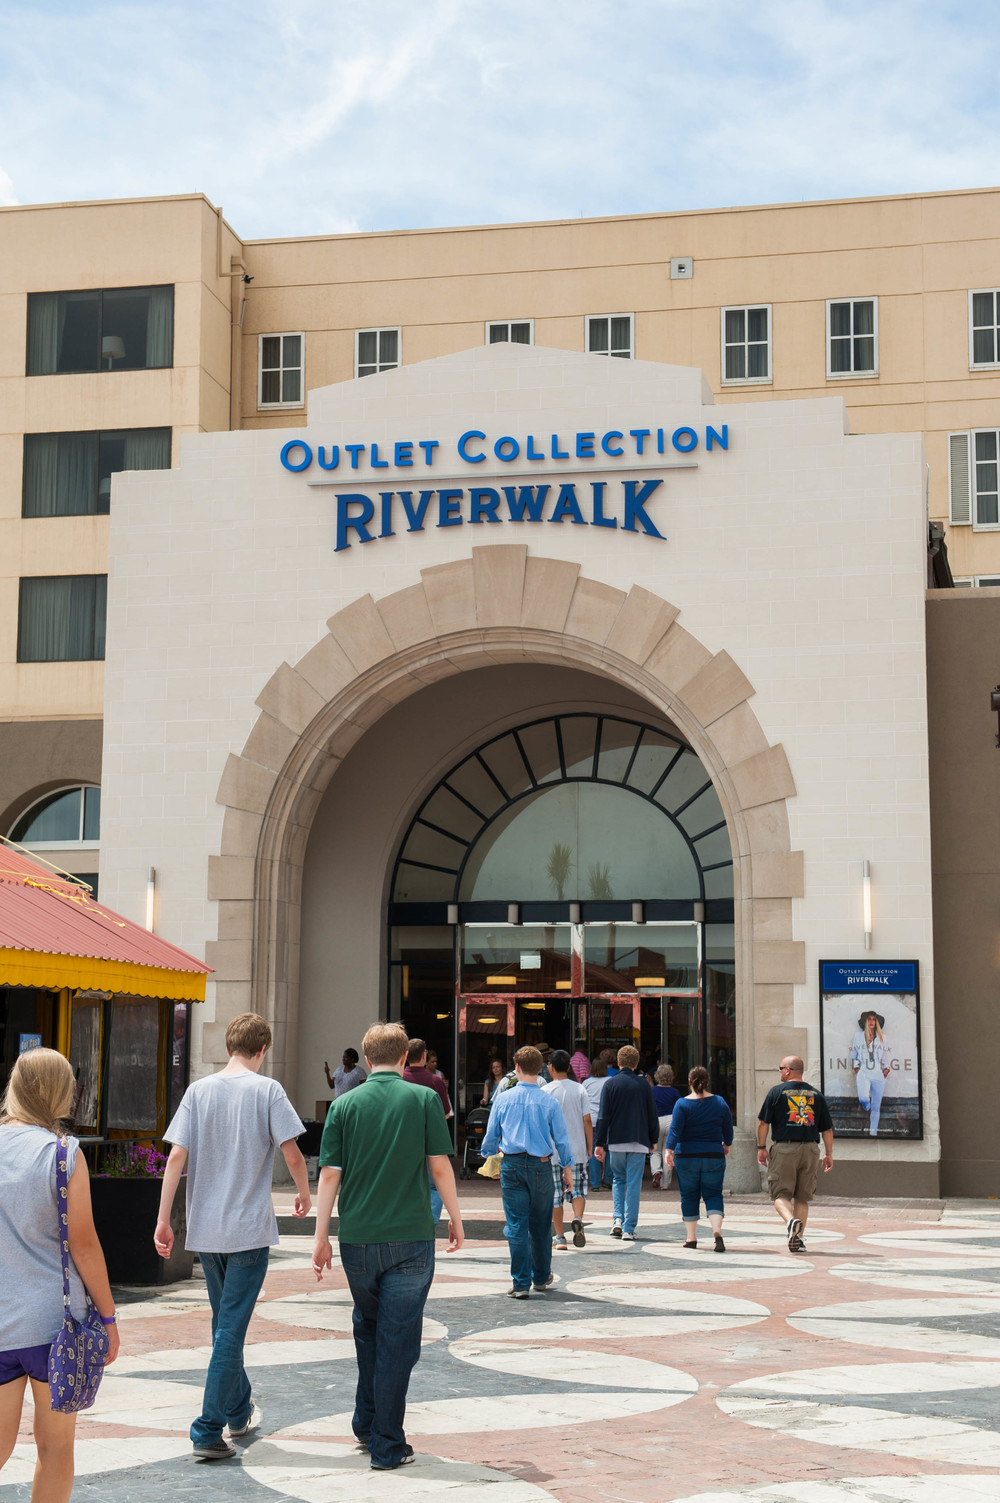 NEW ORLEANS, LA - May 24, 2014: The Outlet Collection at Riverwalk (photo by Adrienne Battistella, 2014)